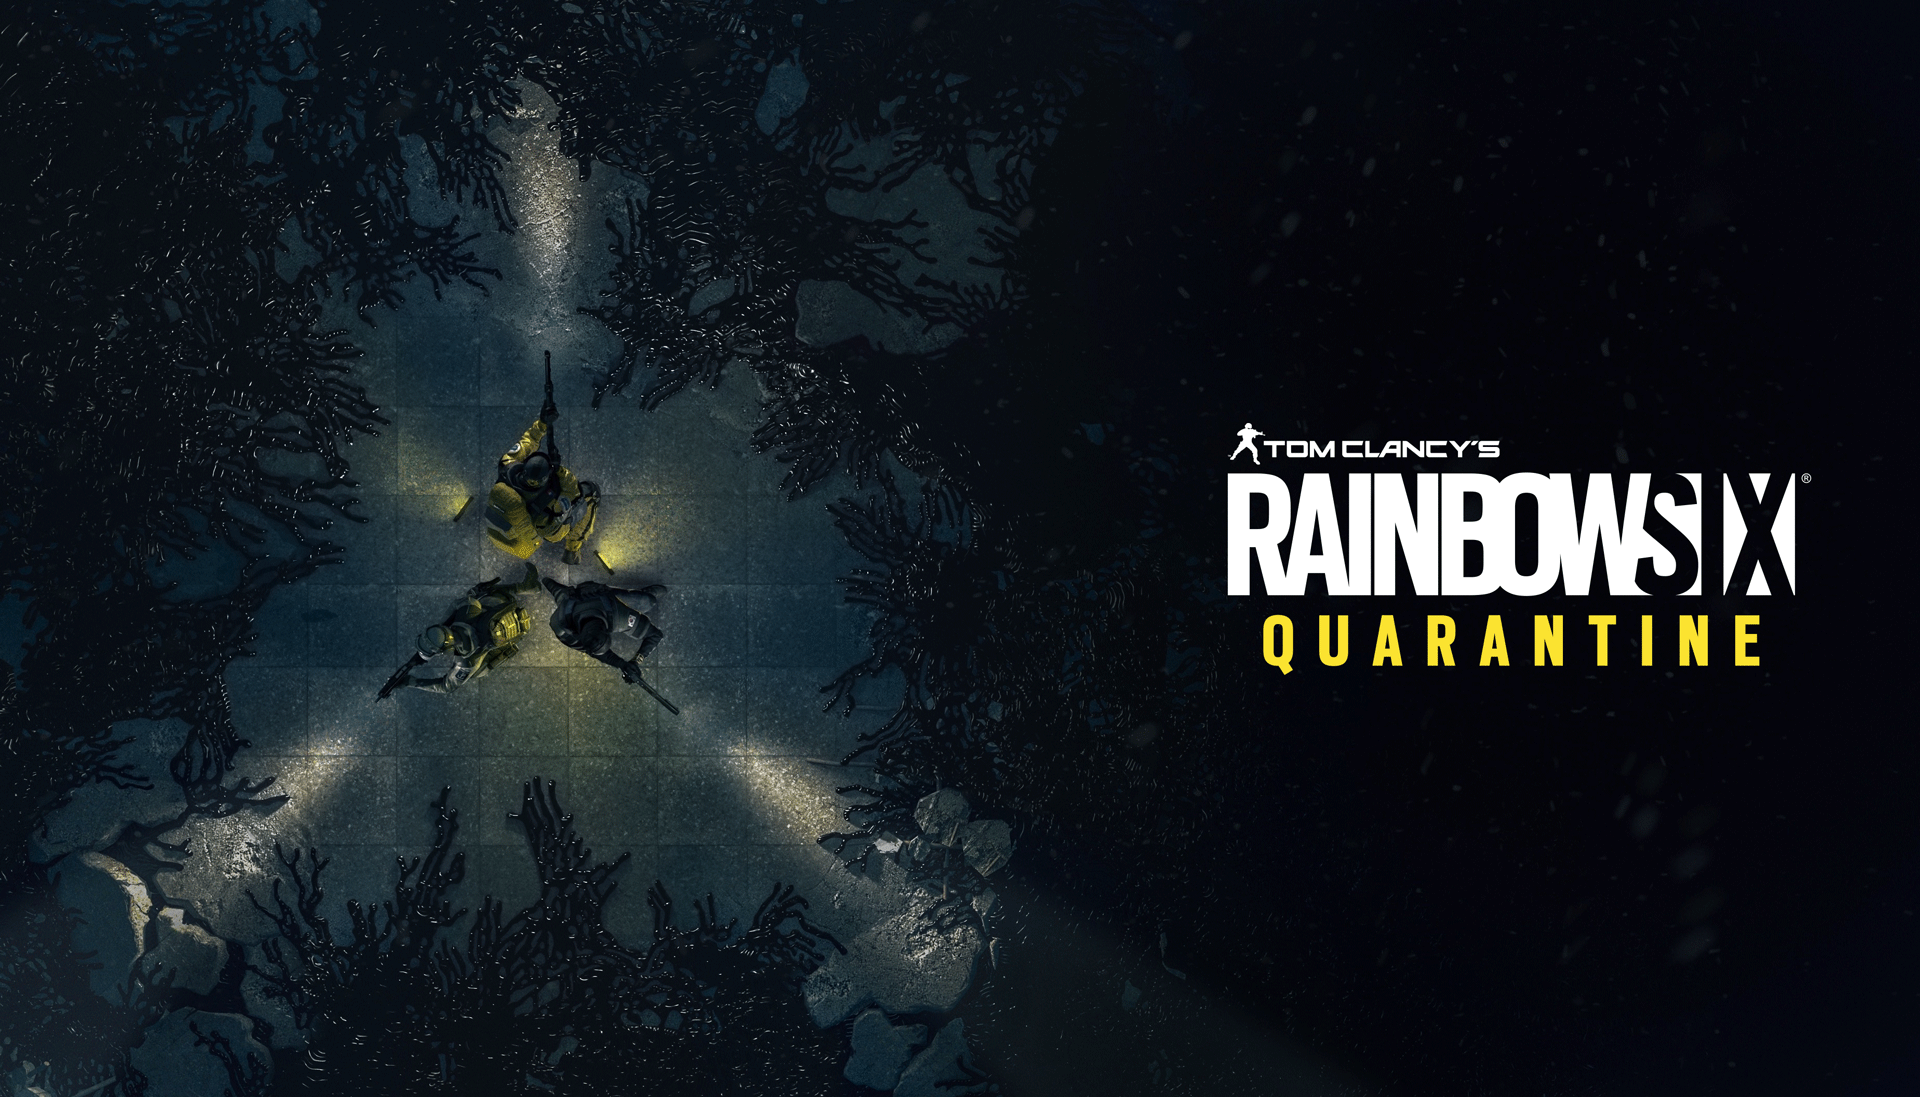 Tom Clancy's Rainbow Six : Quarantine